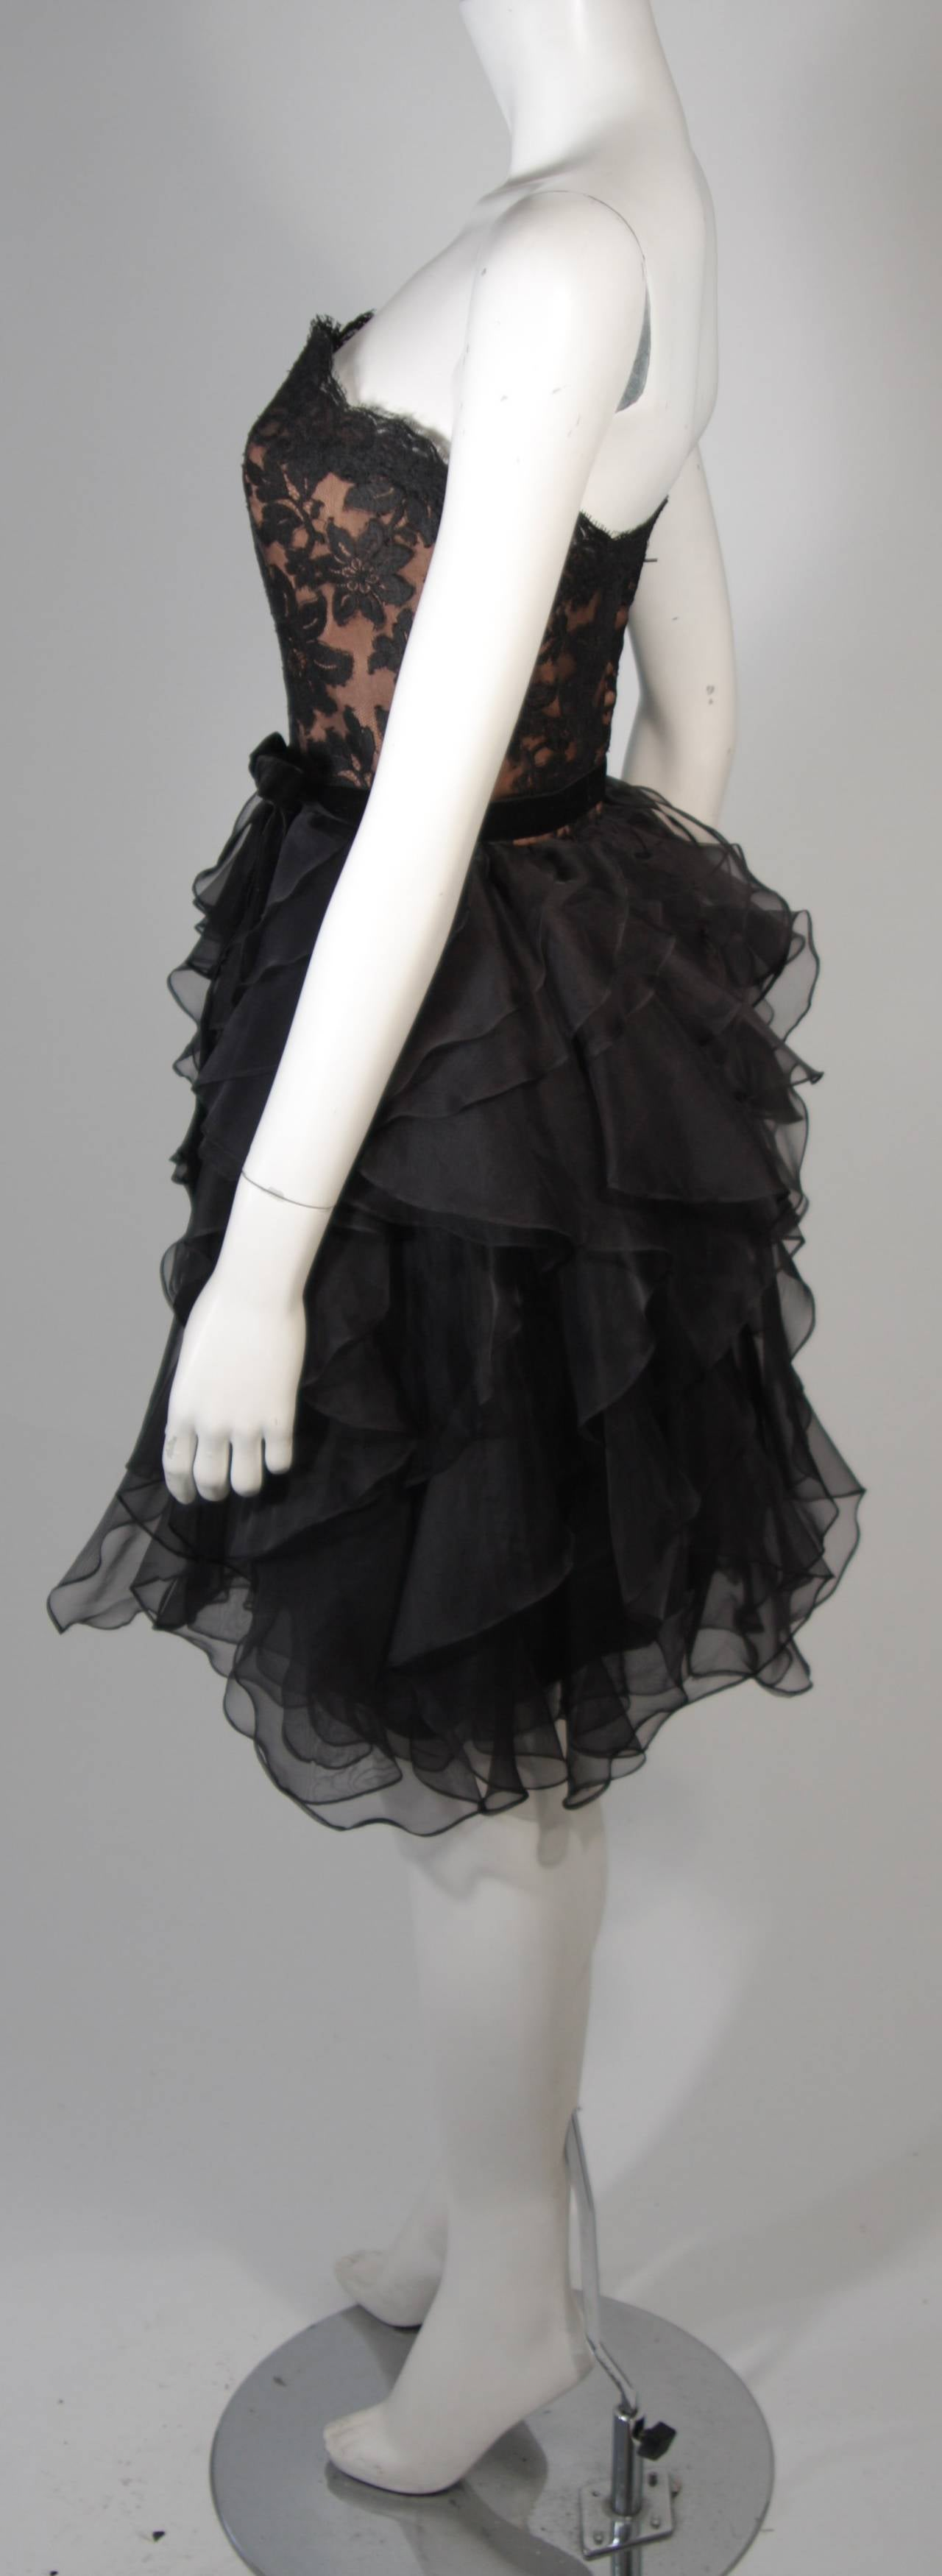 Jill Richards Black Lace Cocktail Dress with Layered Silk Skirt Size 6 For Sale 2